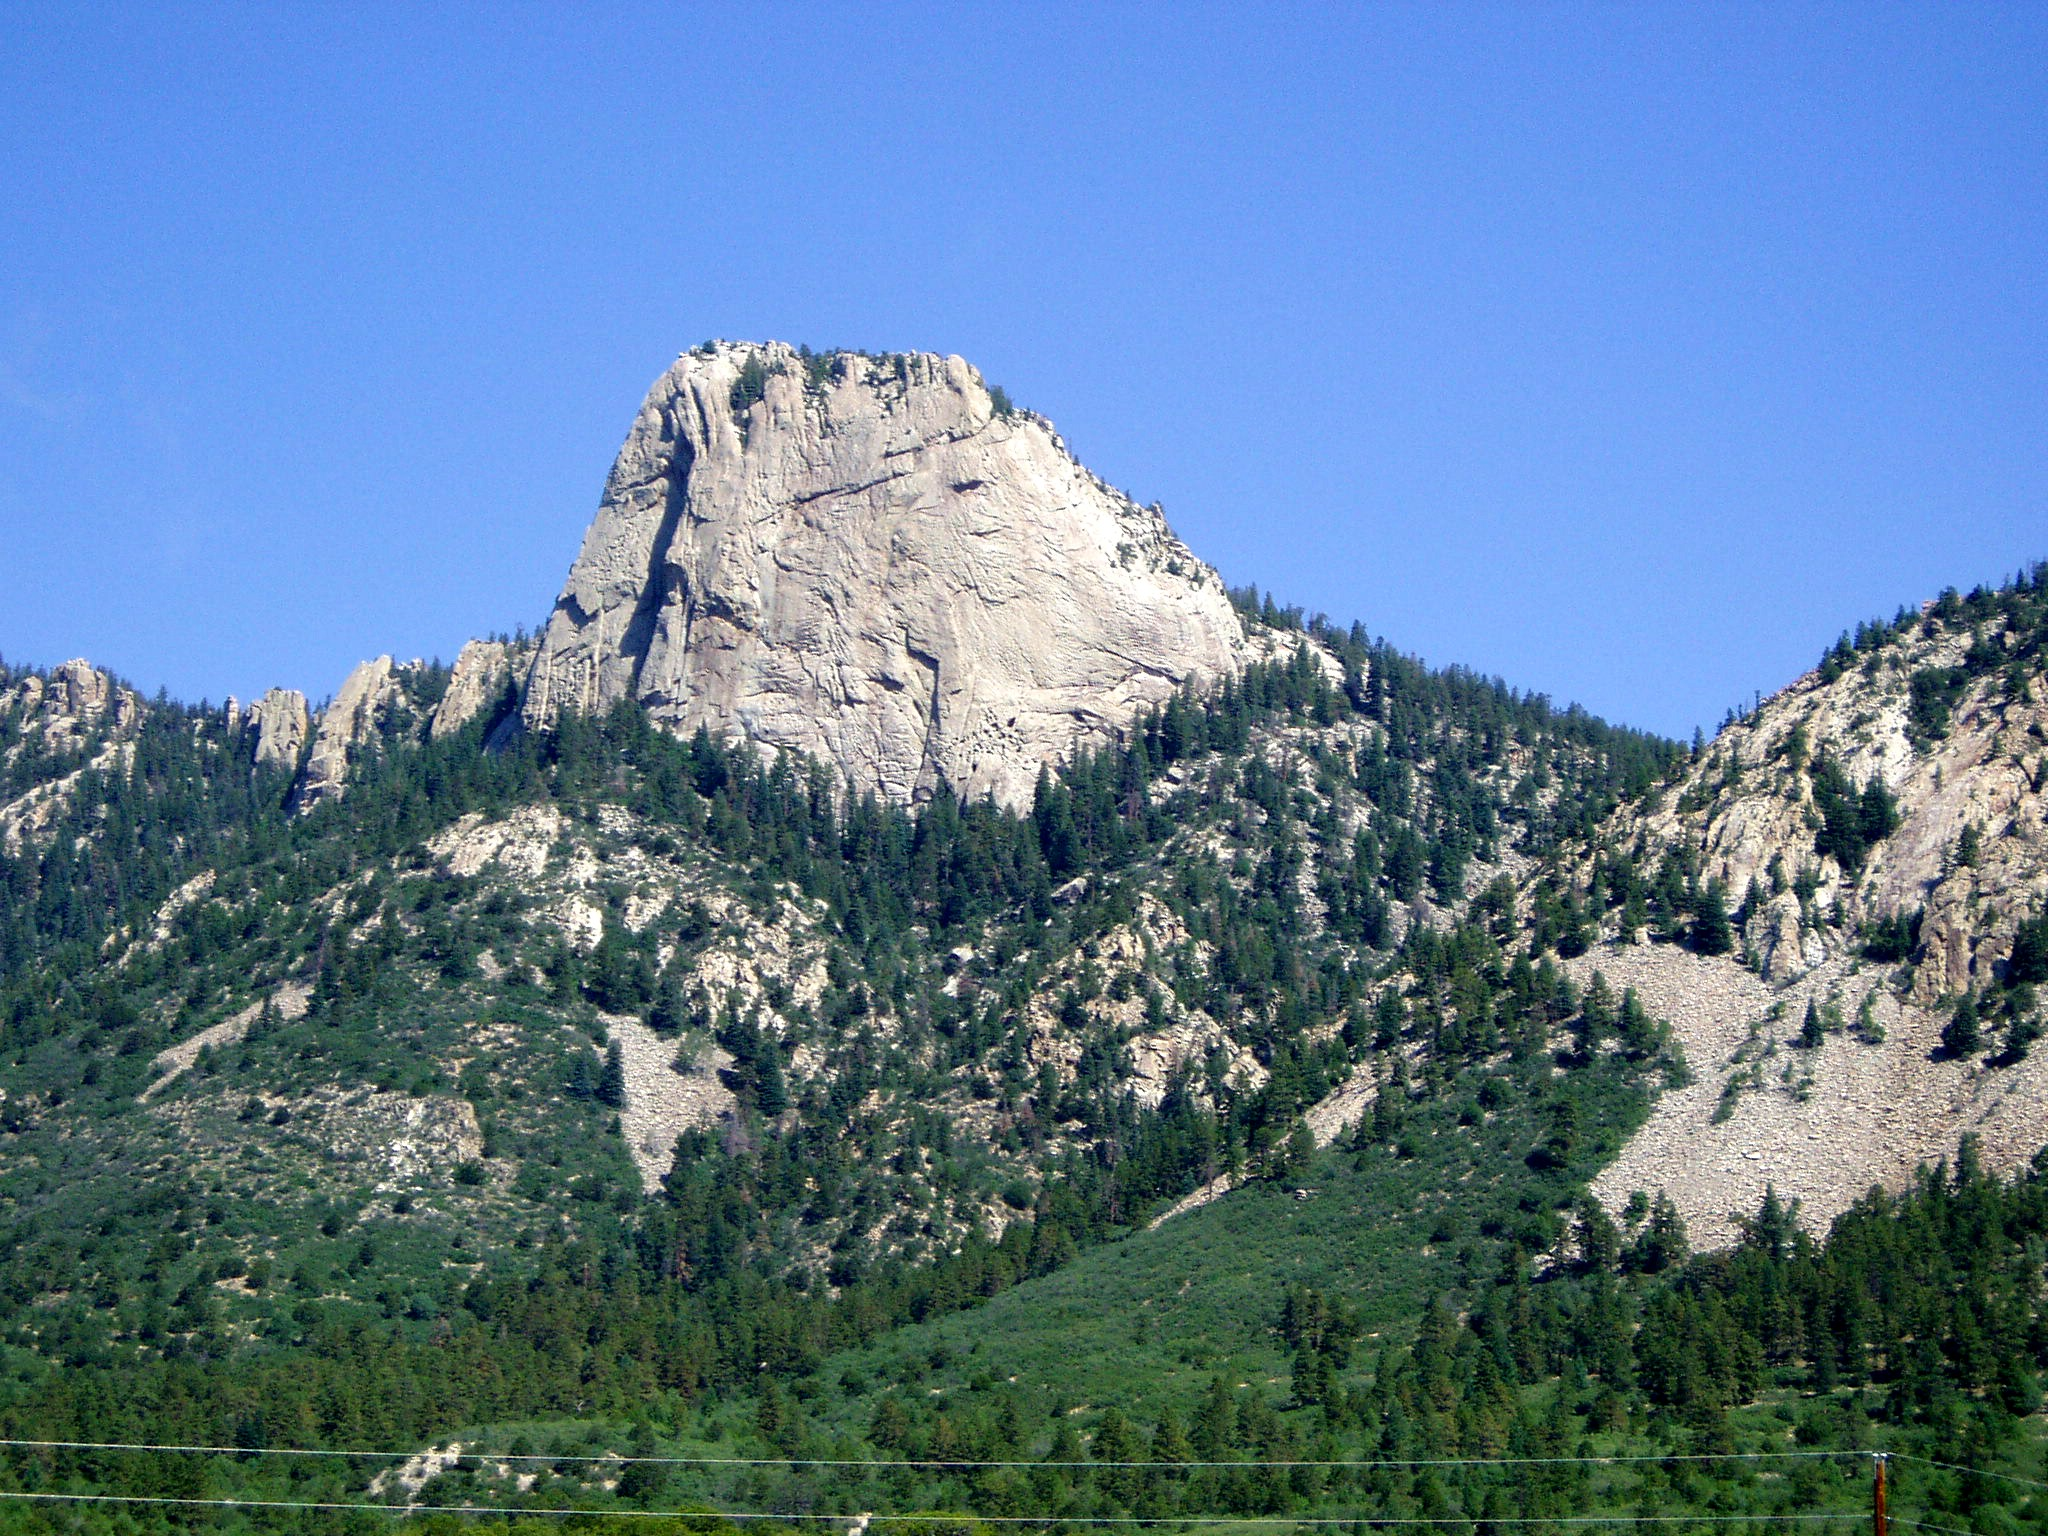 The tooth of time philmont scout ranch cimarron new mexico os